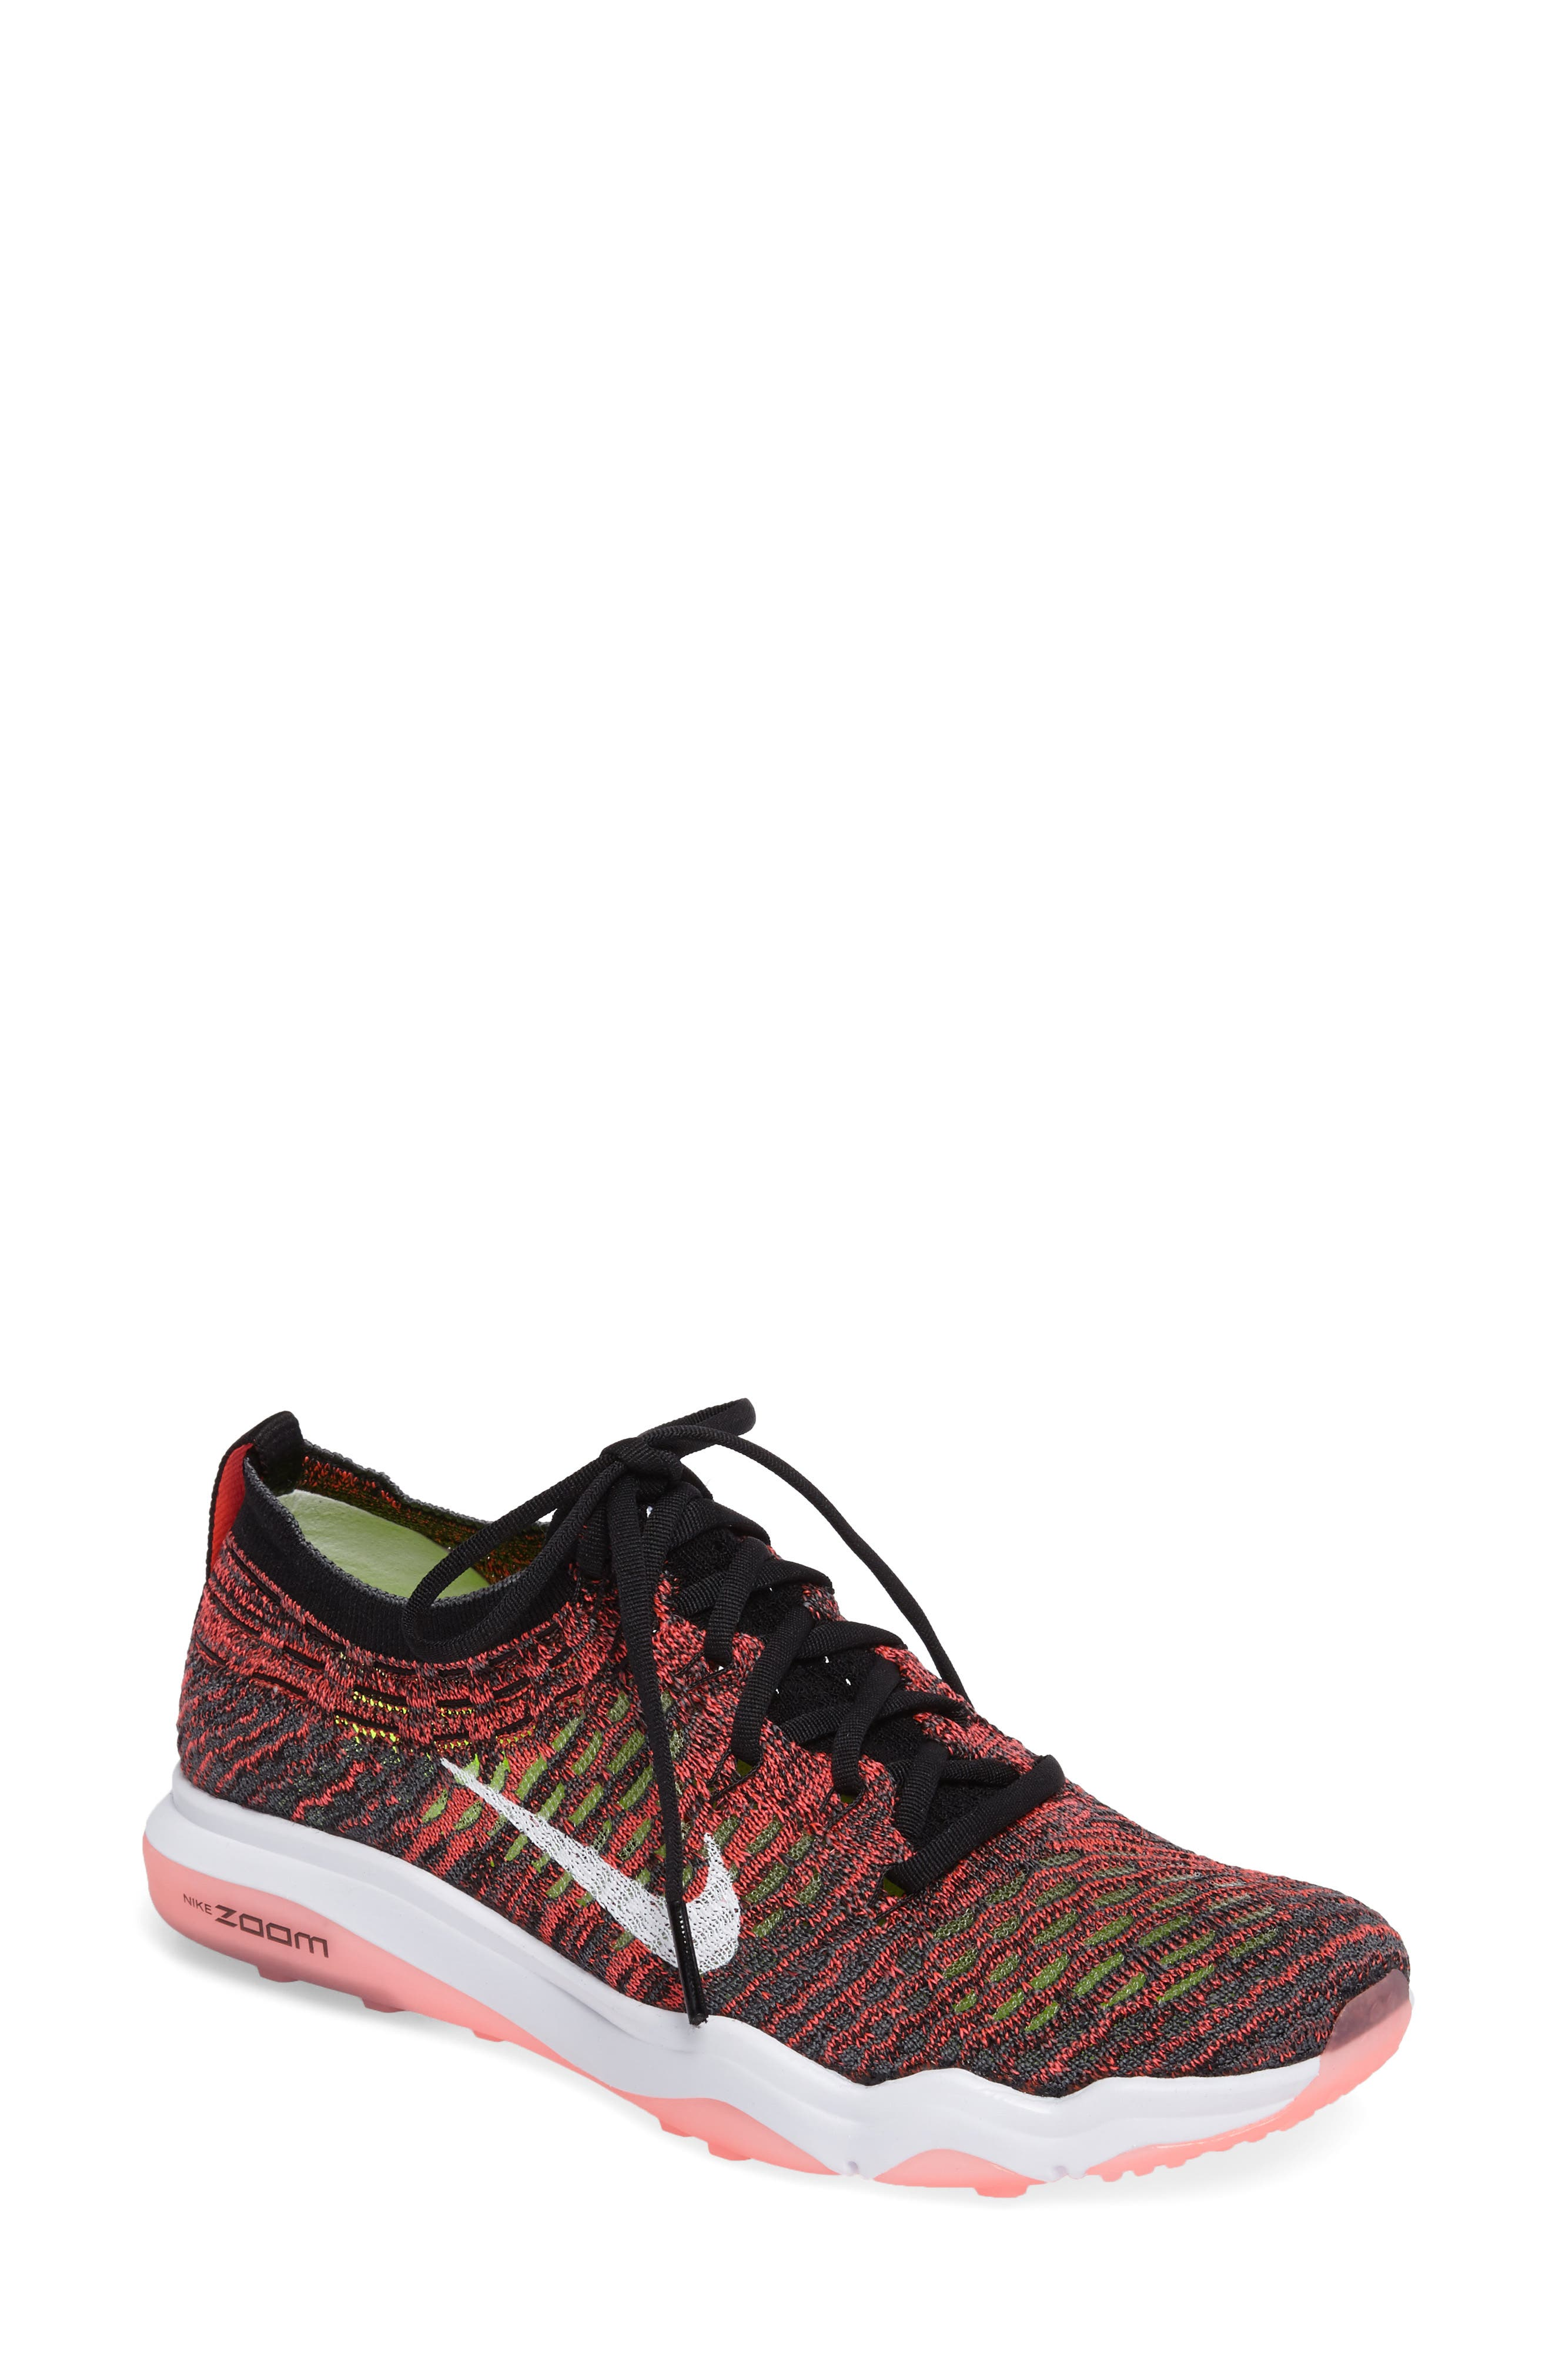 Air Zoom Fearless Flyknit Training Shoe,                             Main thumbnail 1, color,